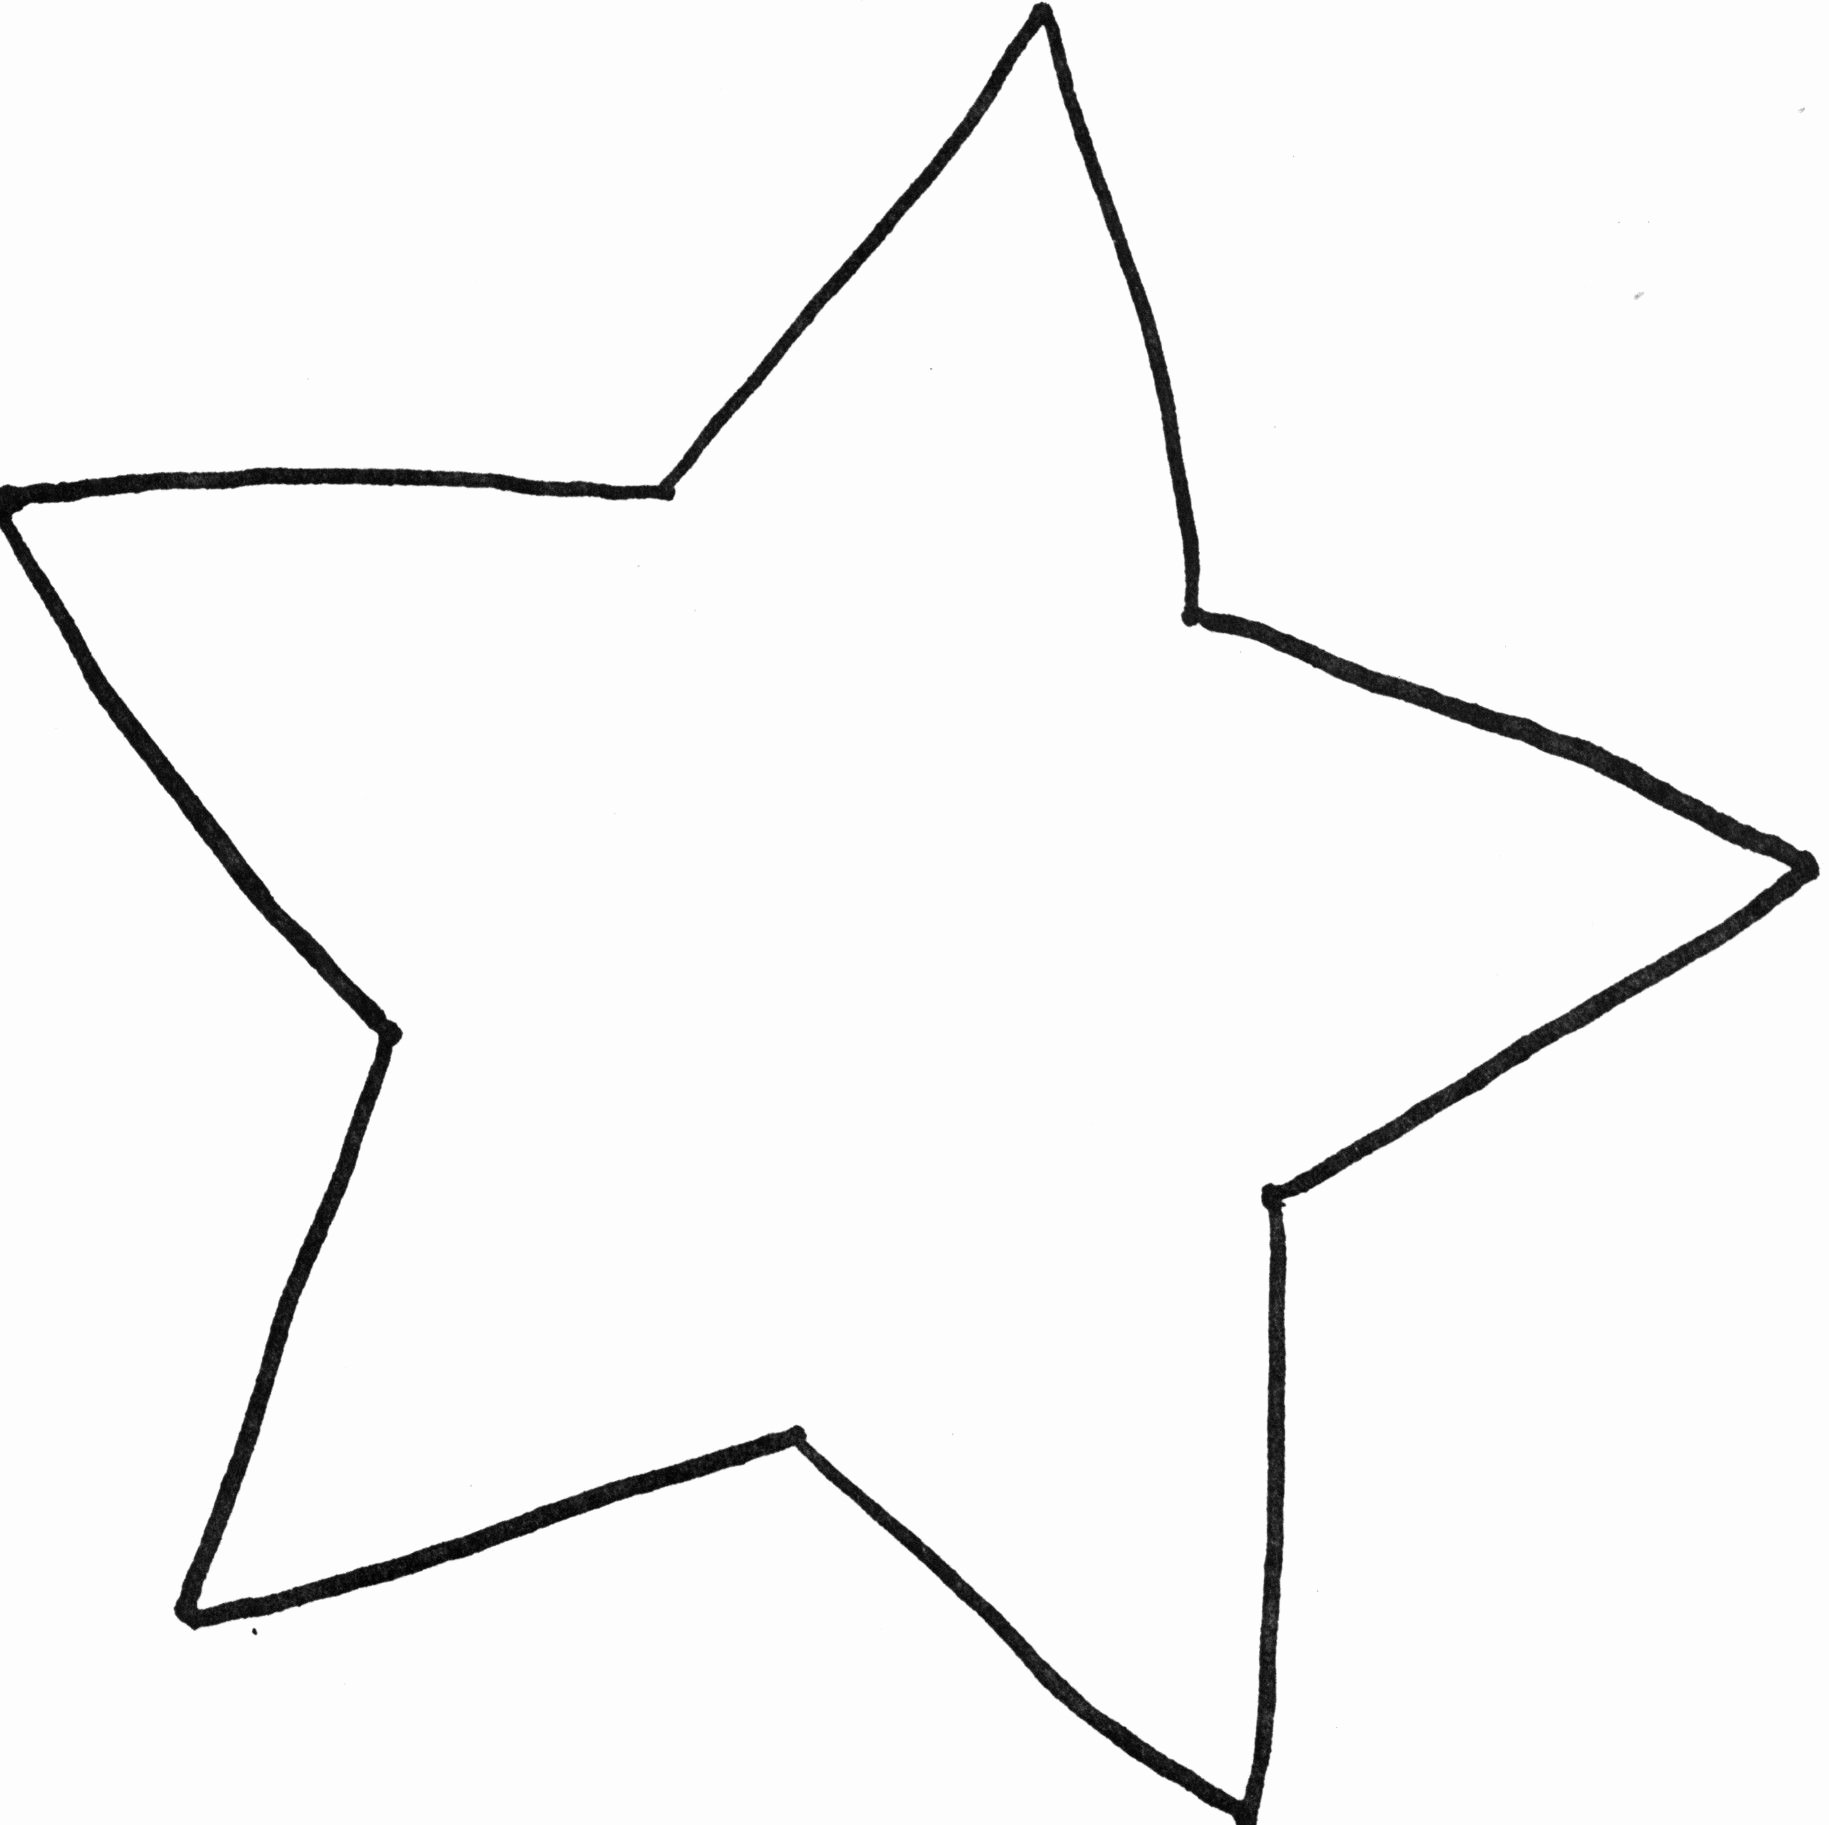 1 Inch Star Template Awesome Star Template